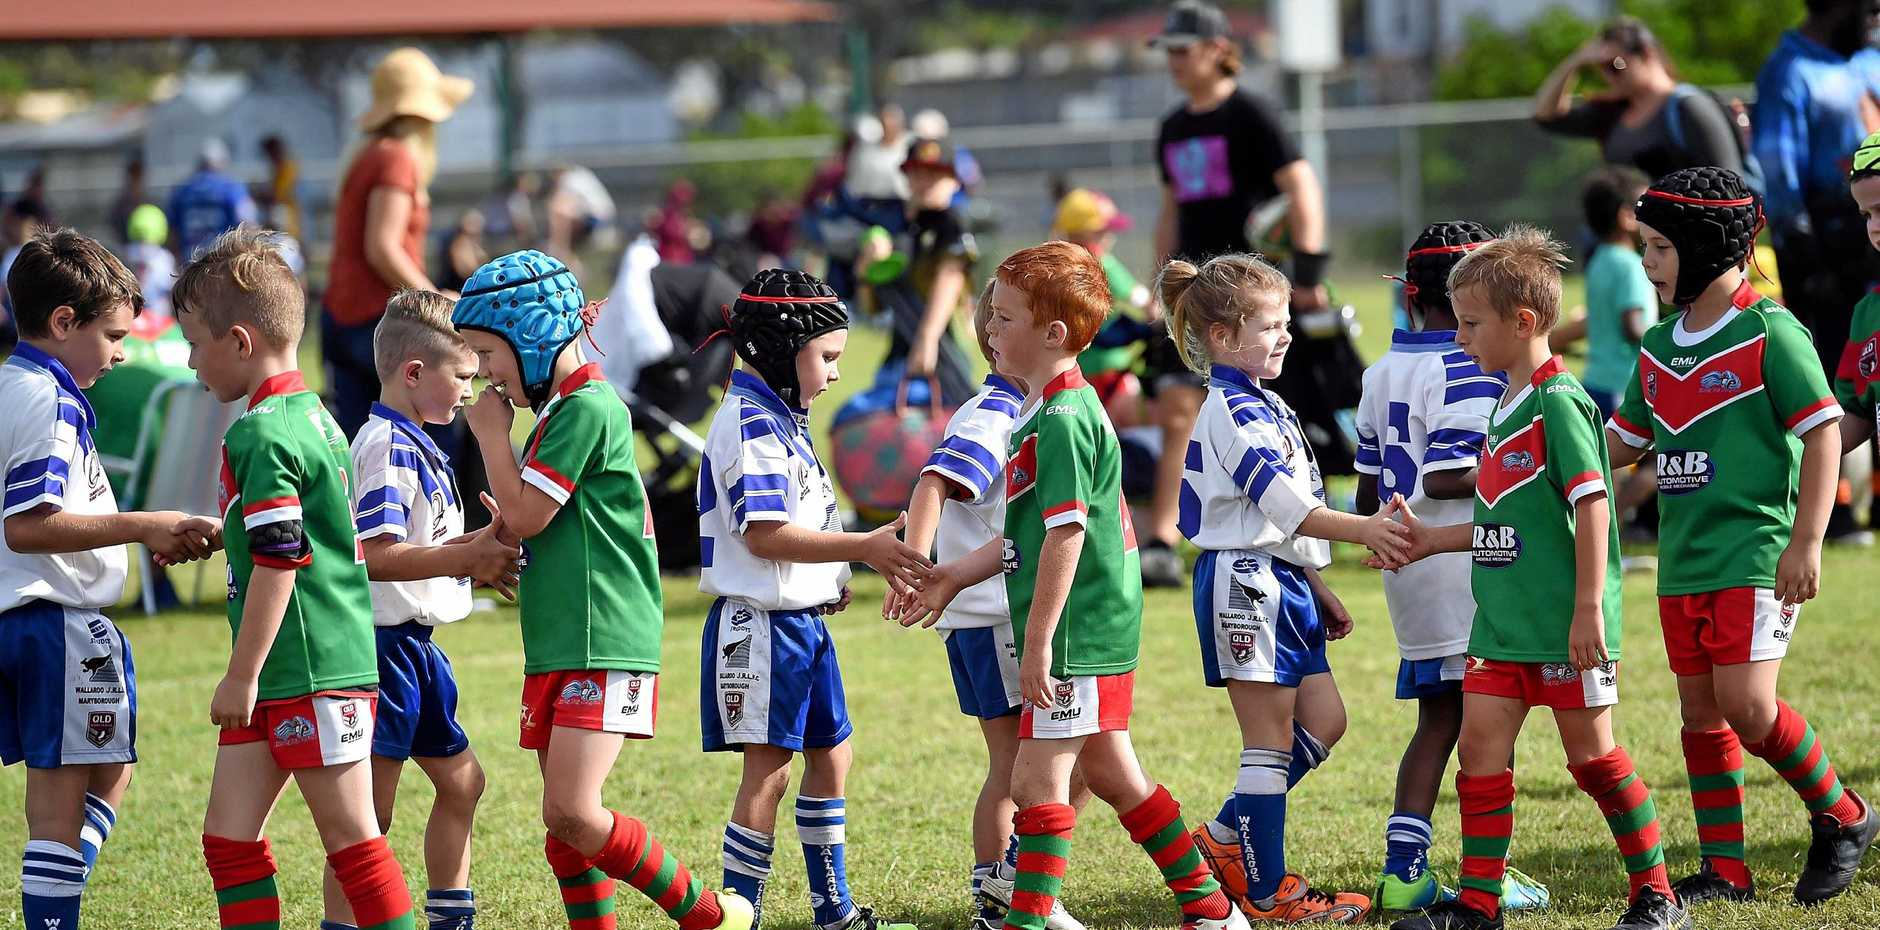 Junior Rugby League - u7 Hervey Bay (green) v Wallaroos White - Teams shaking hands at the end of the game.